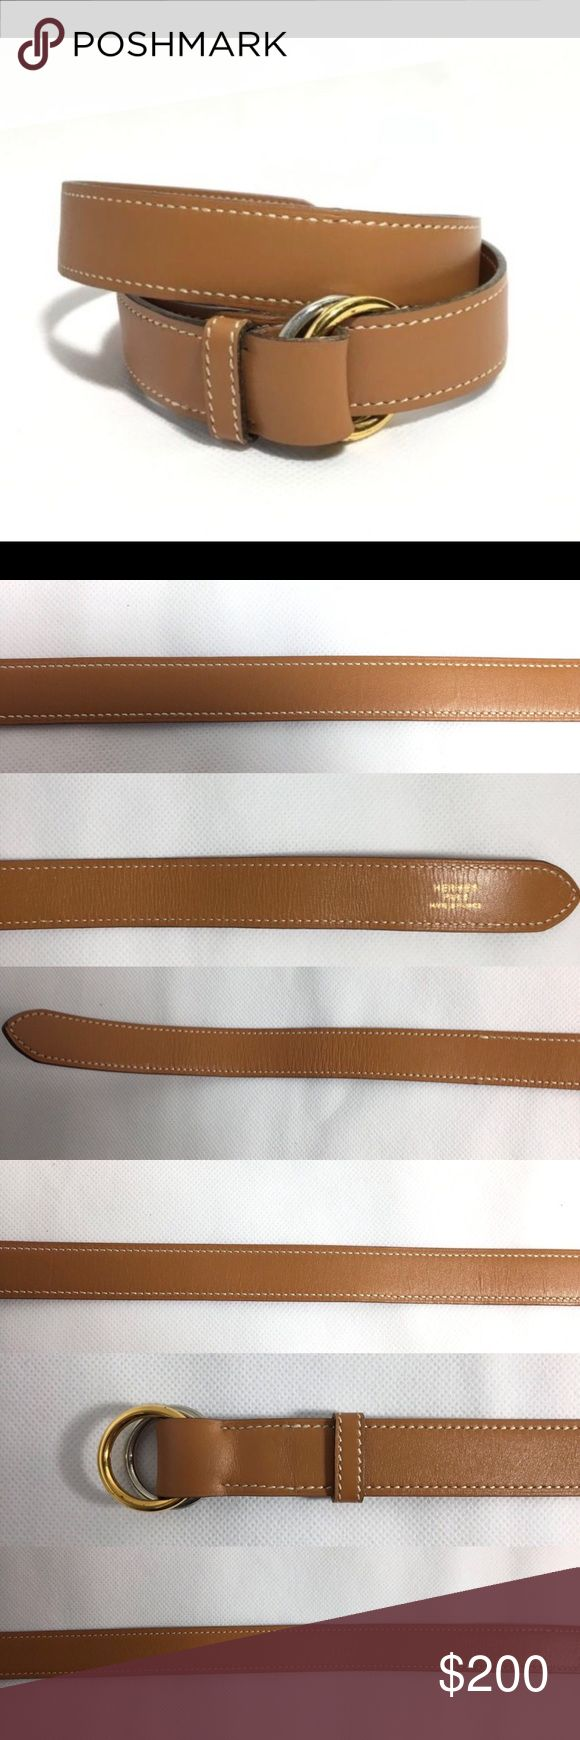 """Authentic Hermes Leather Belt With Double Buckle No Lowballing! No trading. Authentic Hermes tan leather belt with silver tone & gold tone double buckler.    Brand: Hermes Paris. Made in France   Material: leather, metal buckles    Size: 65   Measurements: 32.28"""" (total length with buckle), width 1"""".    Condition: Very good pre owned condition with light signs of use.    Minor wrinkles throughout the belt, few tiny barely noticeable scratches. Buckles show scratches and marks. Hermes…"""